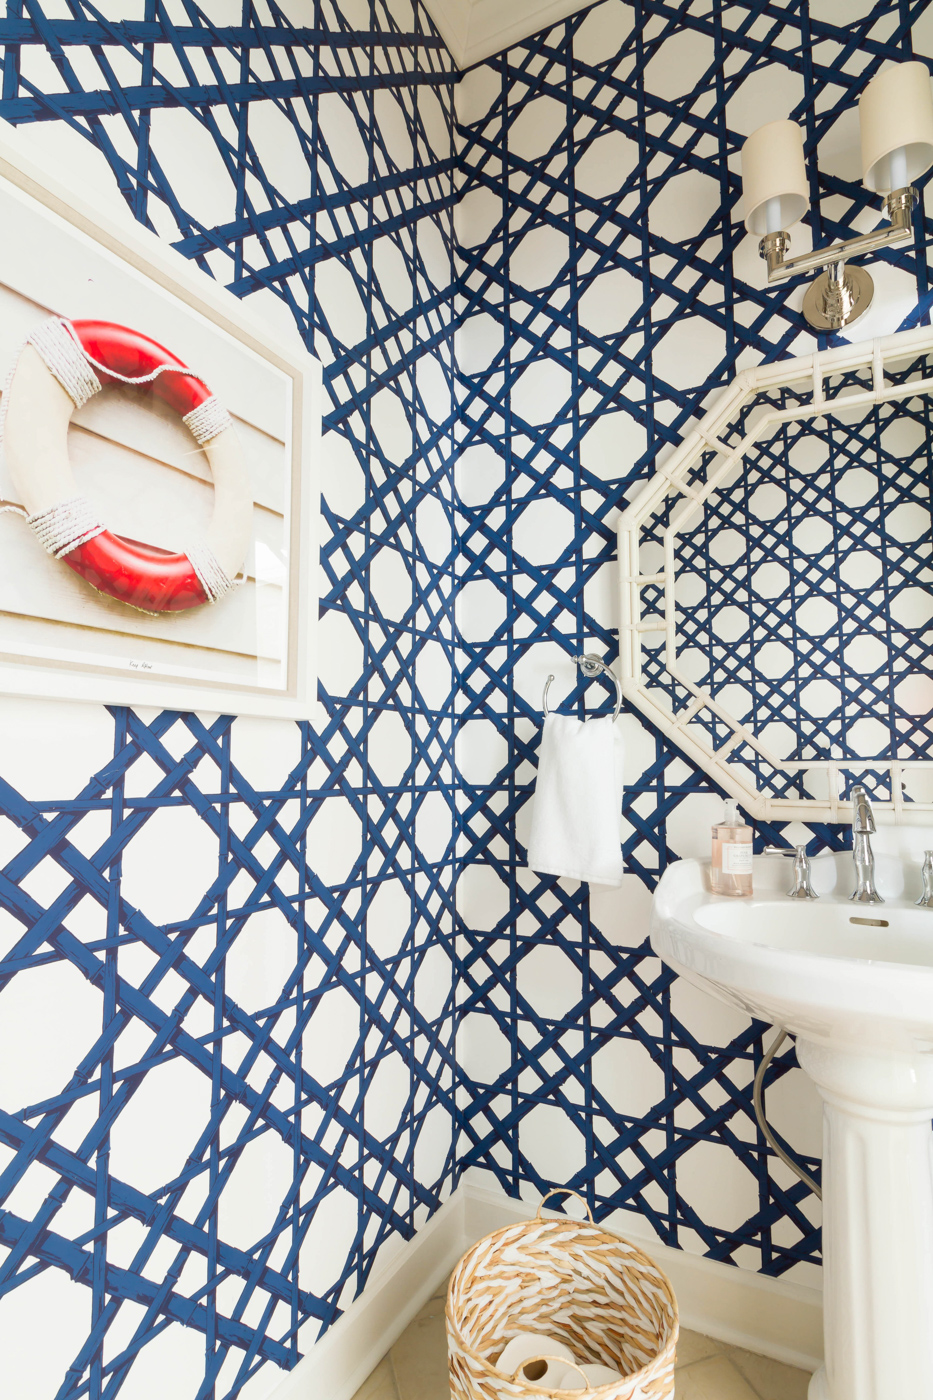 Eclectic Home Tour - love the blue trellis wallpaper in this powder room and the coastal art #wallpaper #powderroom #bathroomdecor